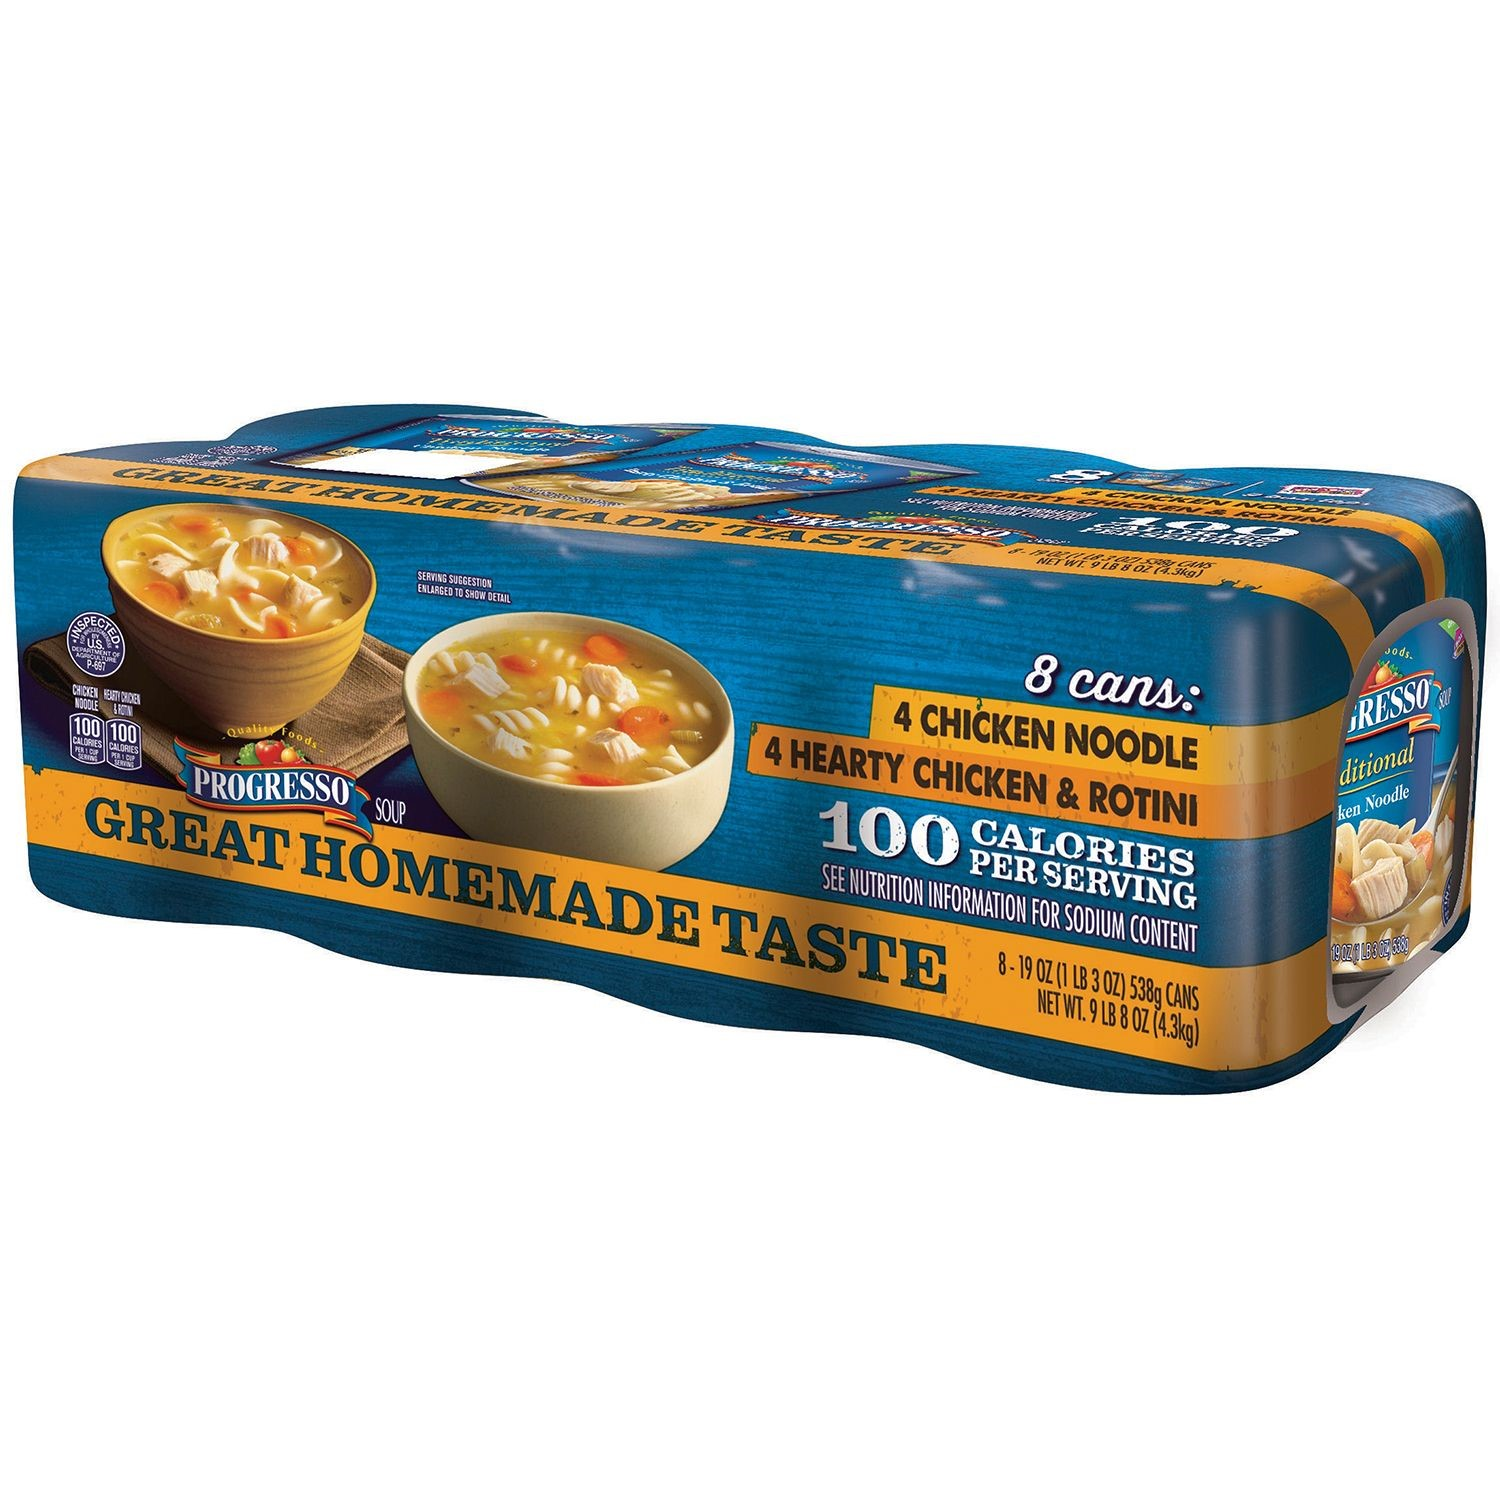 Progresso Chicken Noodle and Hearty Chicken and Rotini Soup 19 oz. 8 Pack